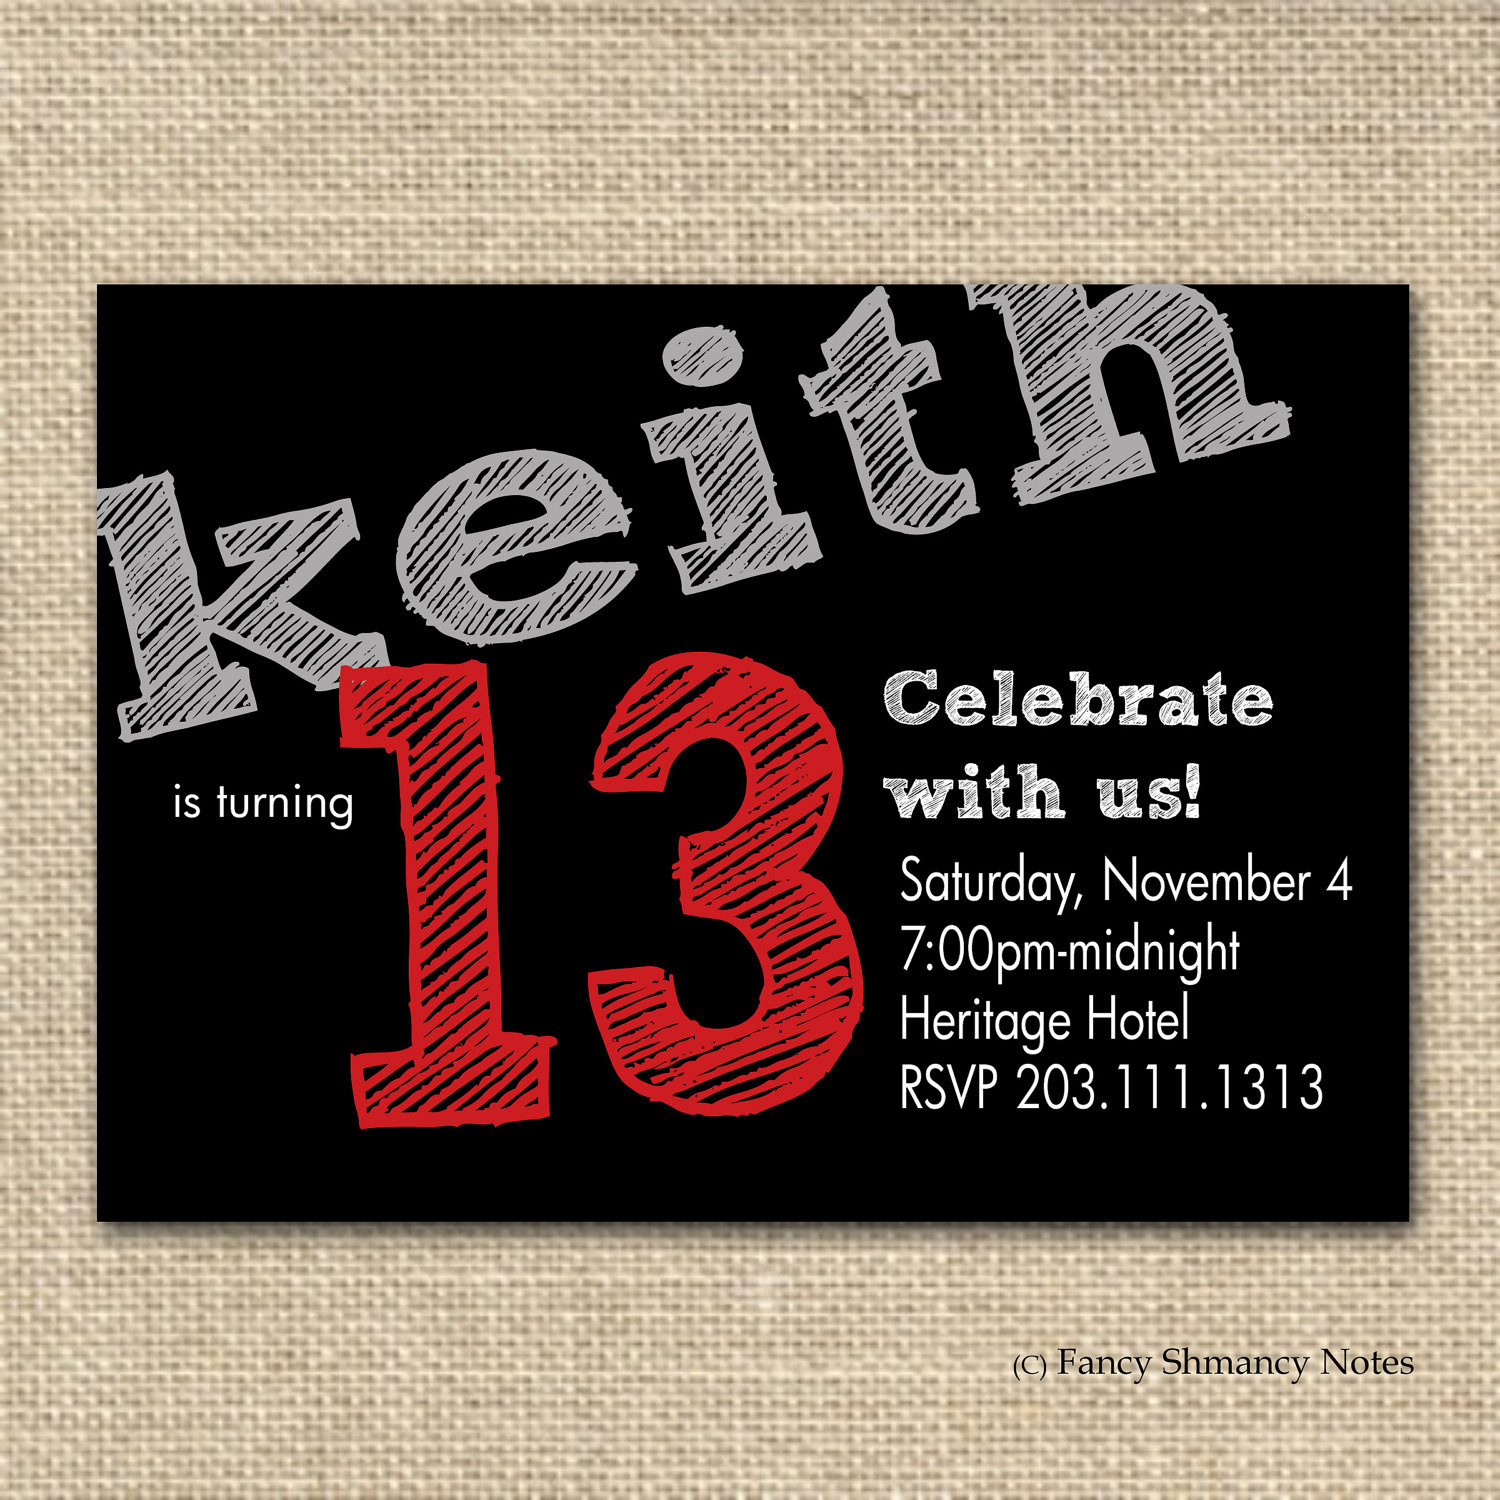 13th birthday party invitations ; 13Th-Birthday-Party-Invitations-For-Boys-for-a-winsome-birthday-Invitation-design-with-winsome-layout-1